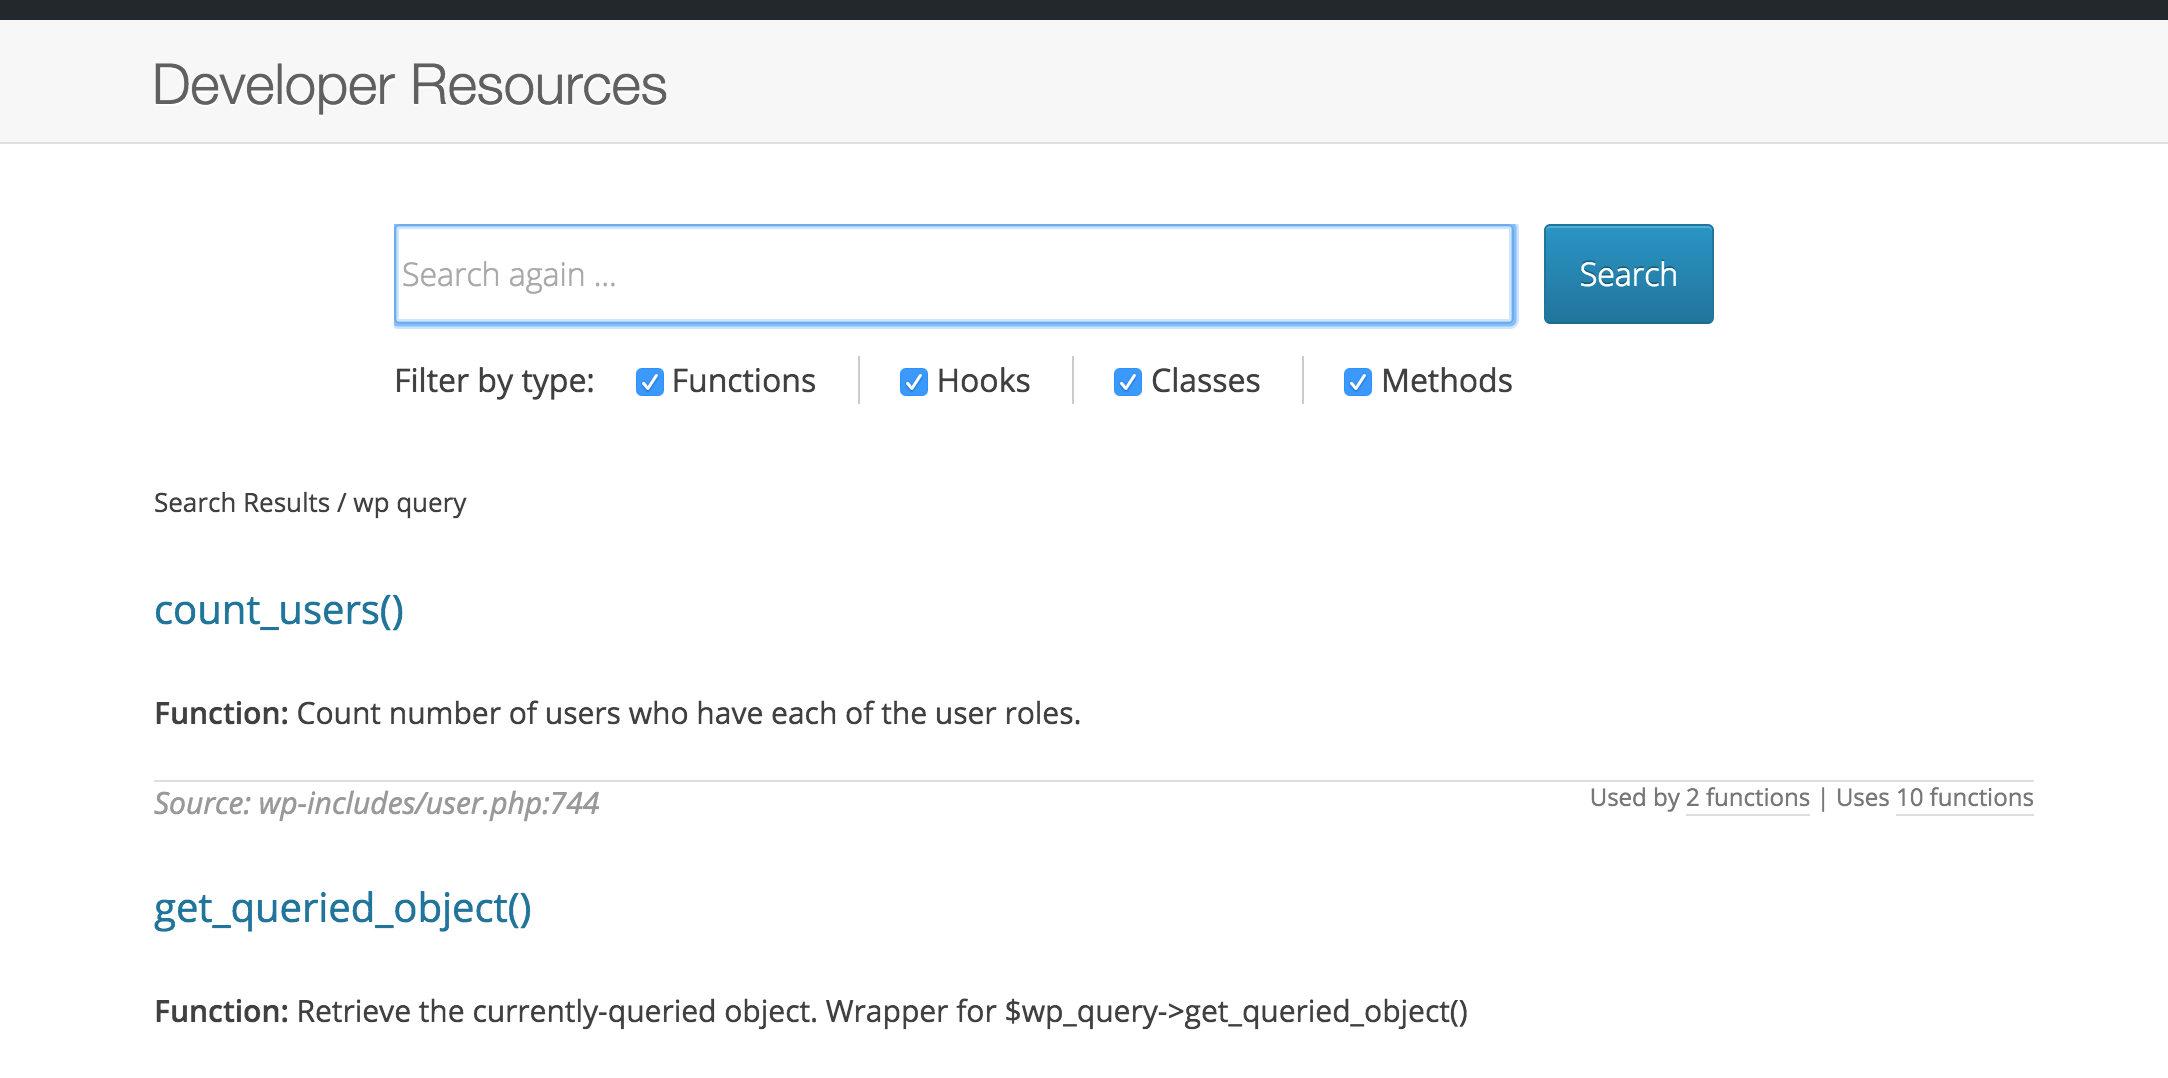 Mockup of search form on results page